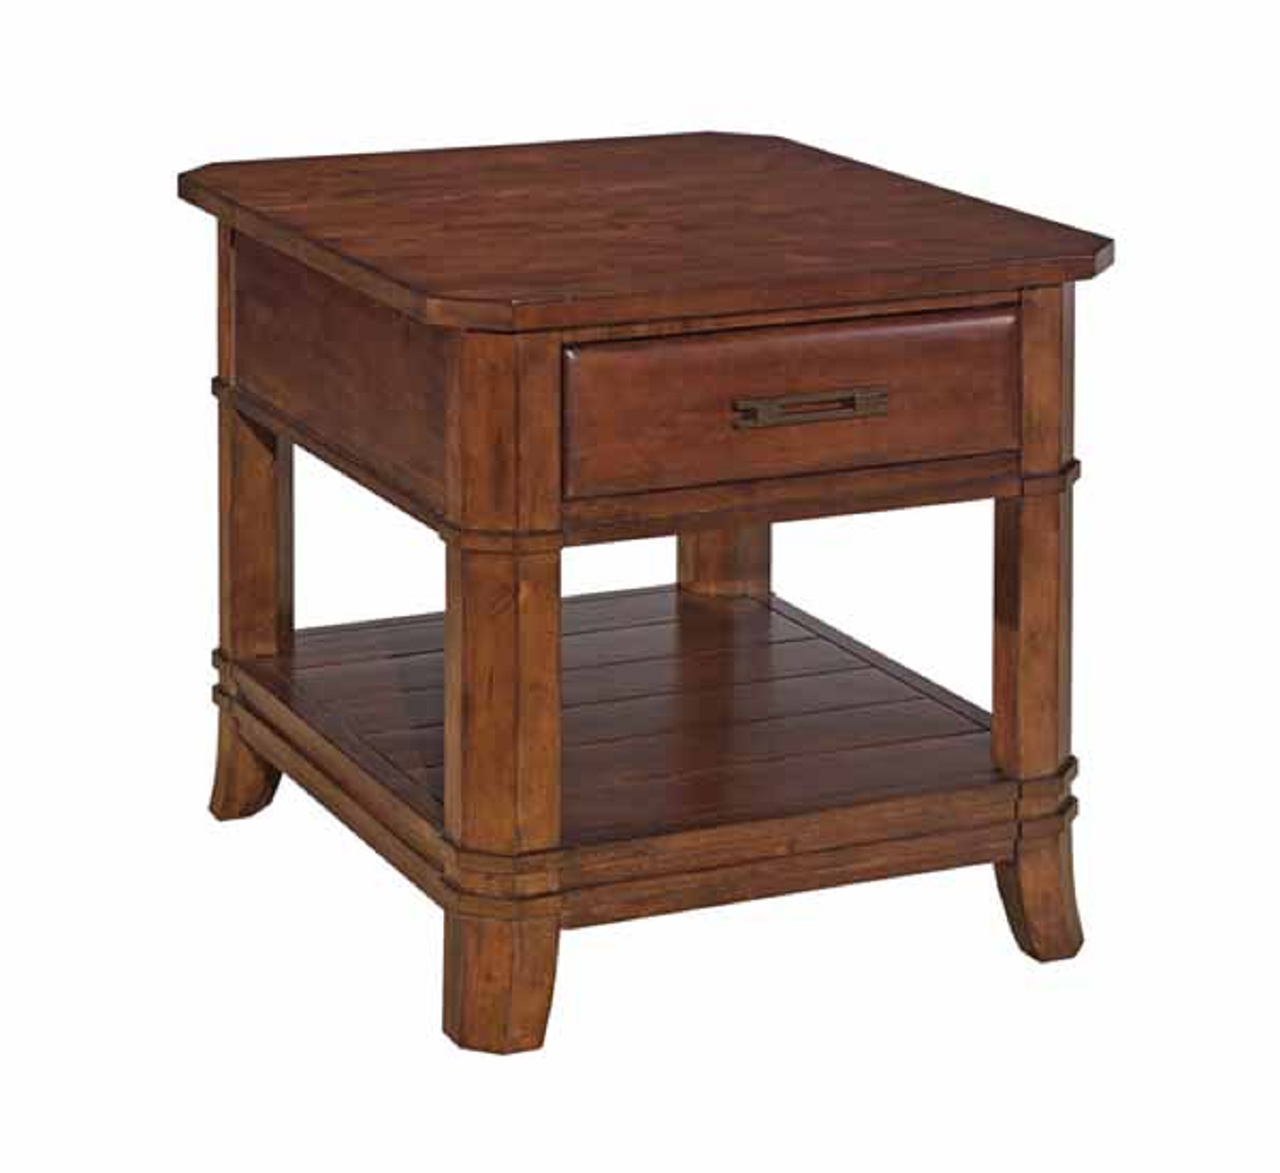 kincaid furniture rosecroft collection drawer end table tables loading zoom dark red leather armchair marble coffee with glass top laura ashley style wallpaper mor spokane stanley